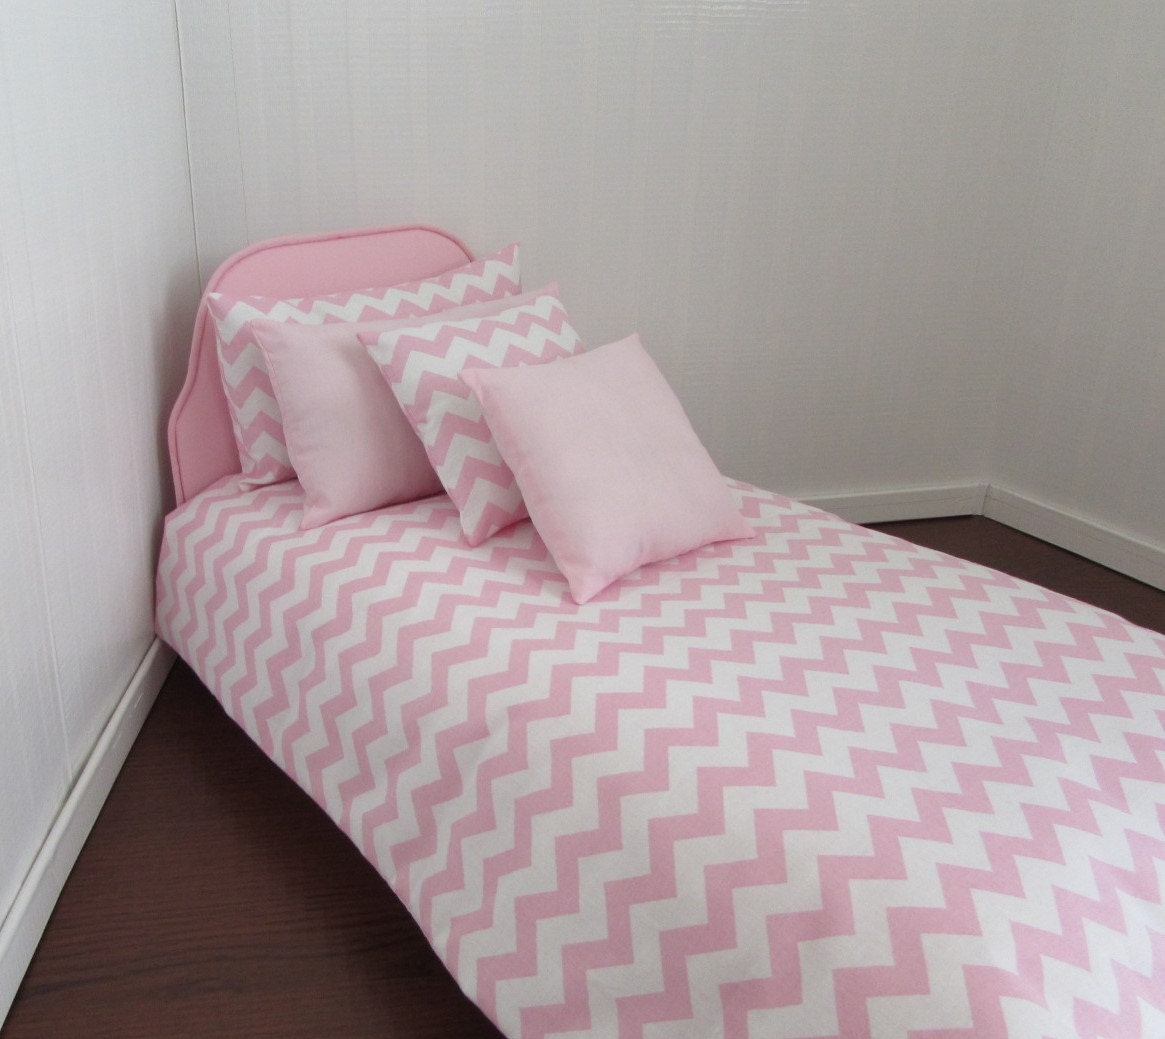 Doll Bedding For 18 Inch Doll Dollhouse Bedding Doll Pillow